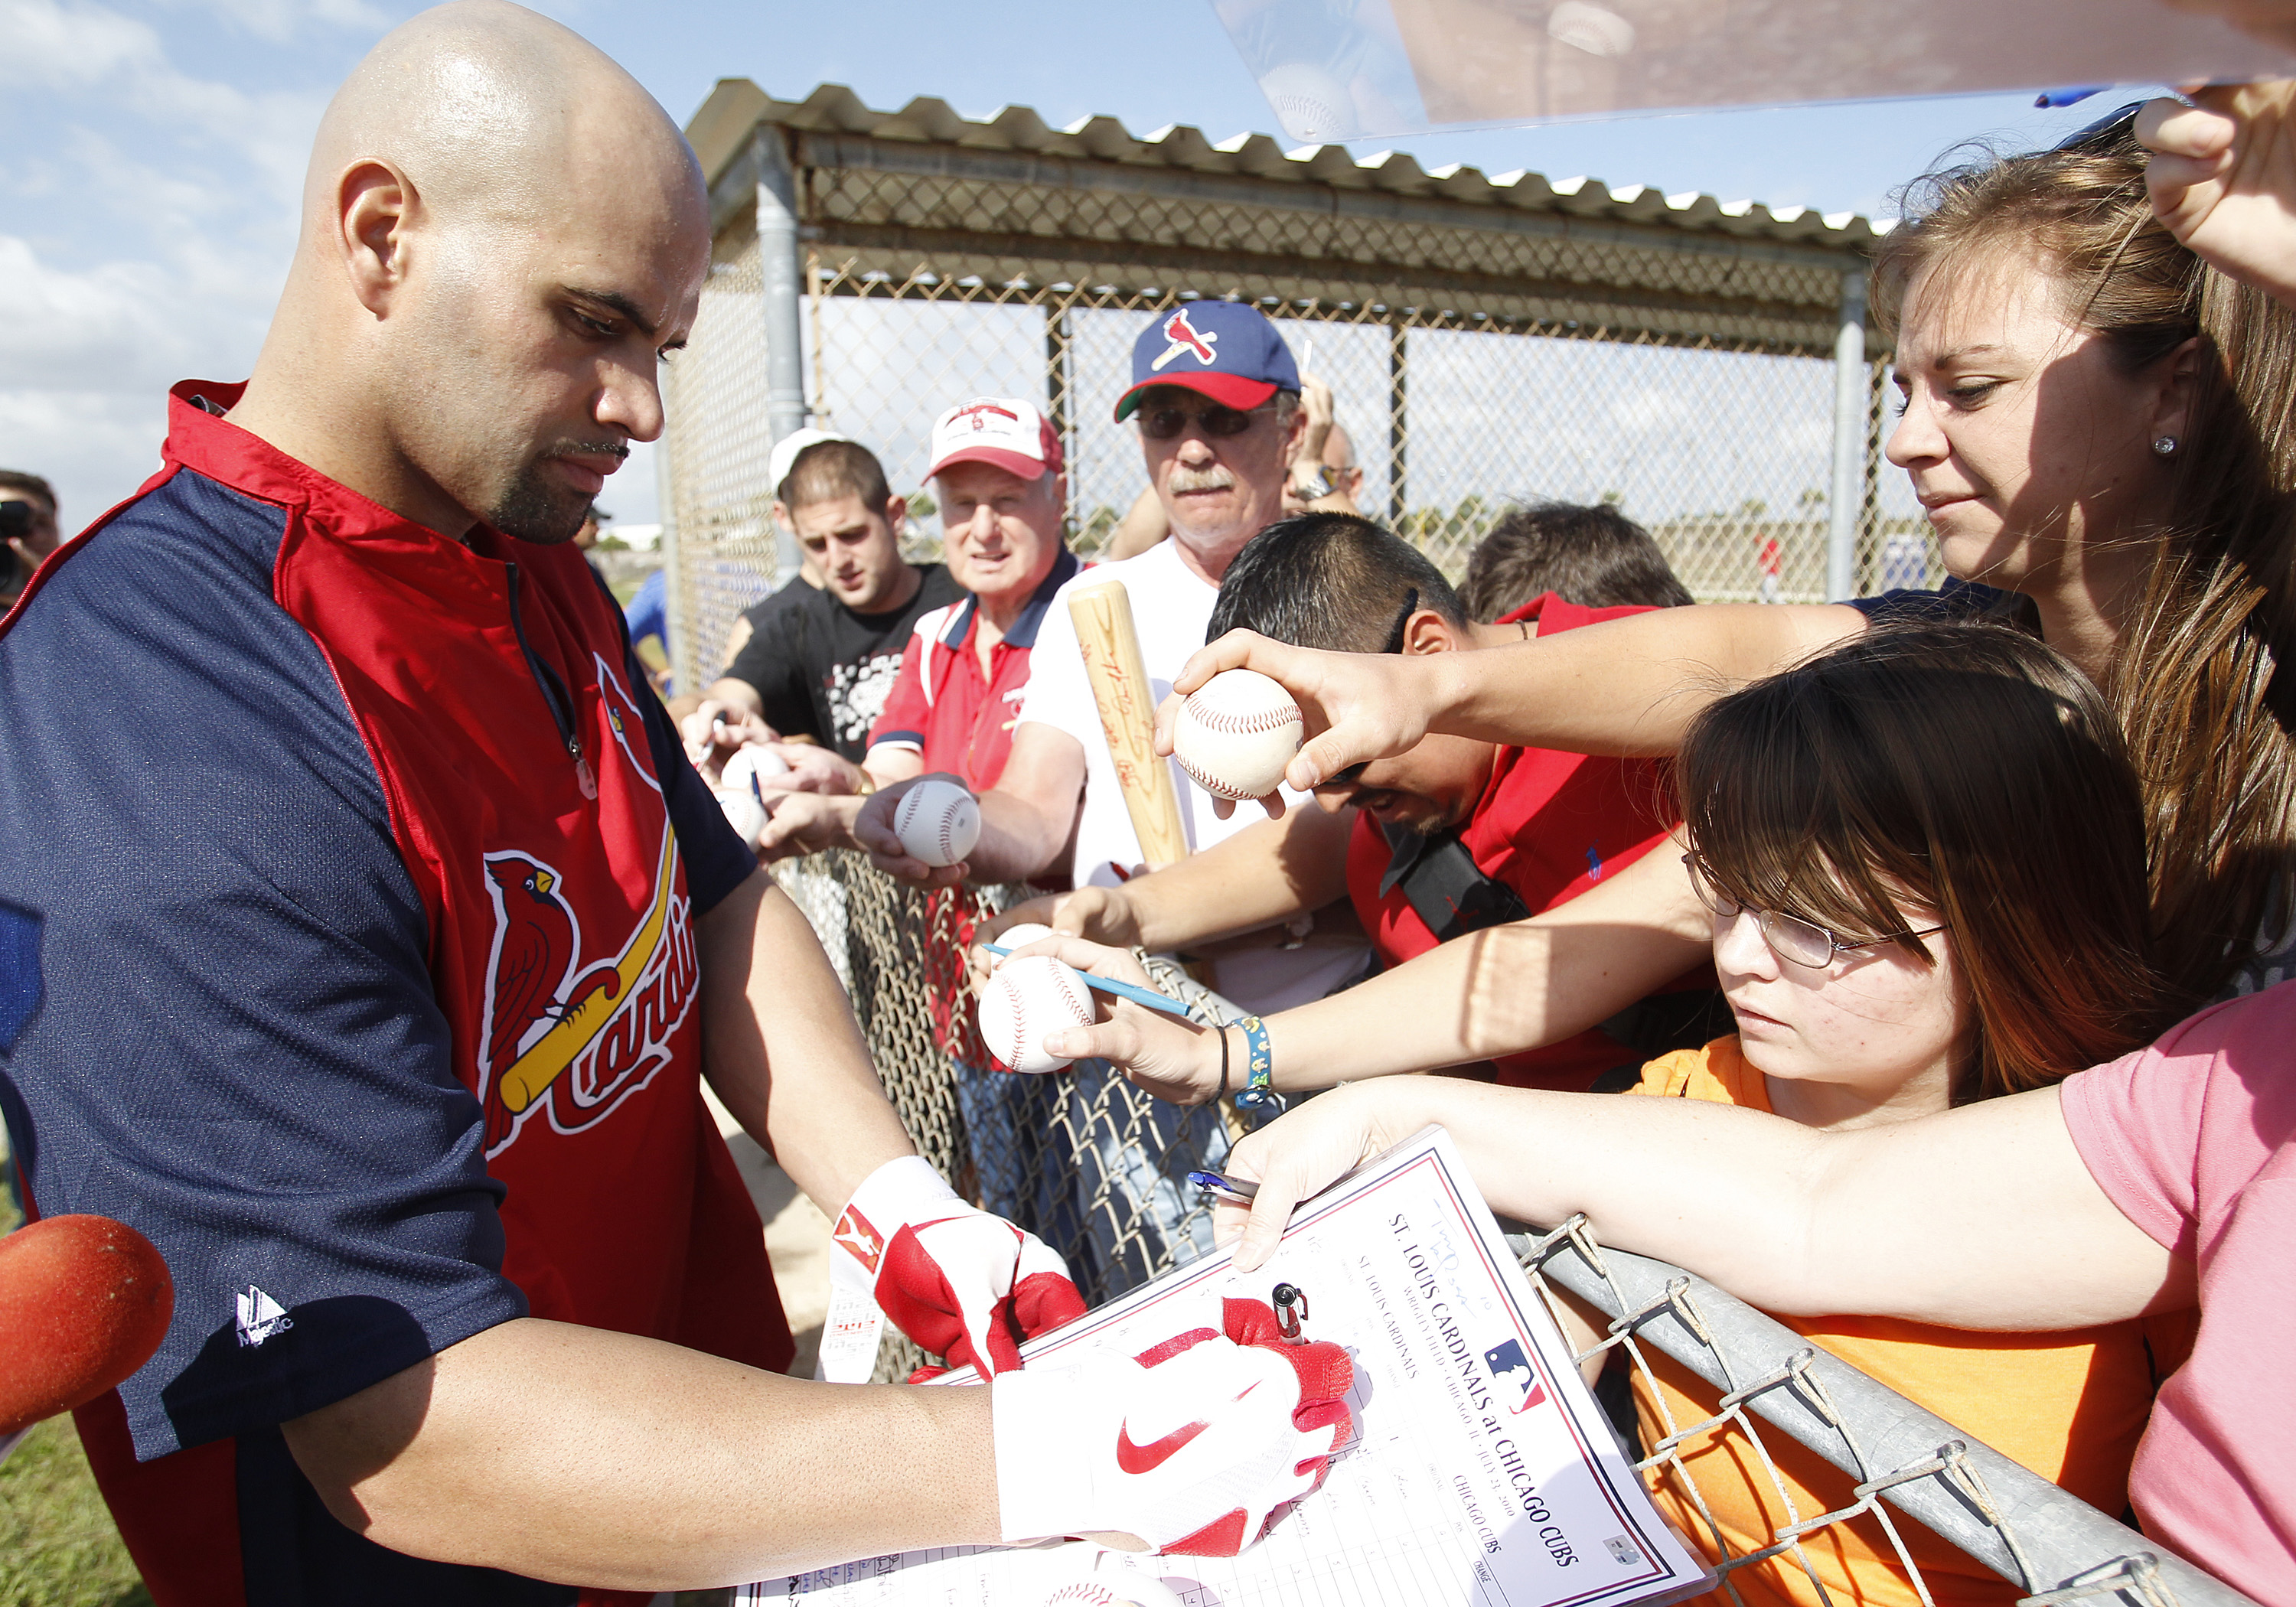 JUPITER, FL - FEBRUARY 17: Albert Pujols #5 #5 of the St. Louis Cardinals signs autographs for fans at Roger Dean Stadium on February 17, 2011 in Jupiter, Florida. (Photo by Joel Auerbach/Getty Images)